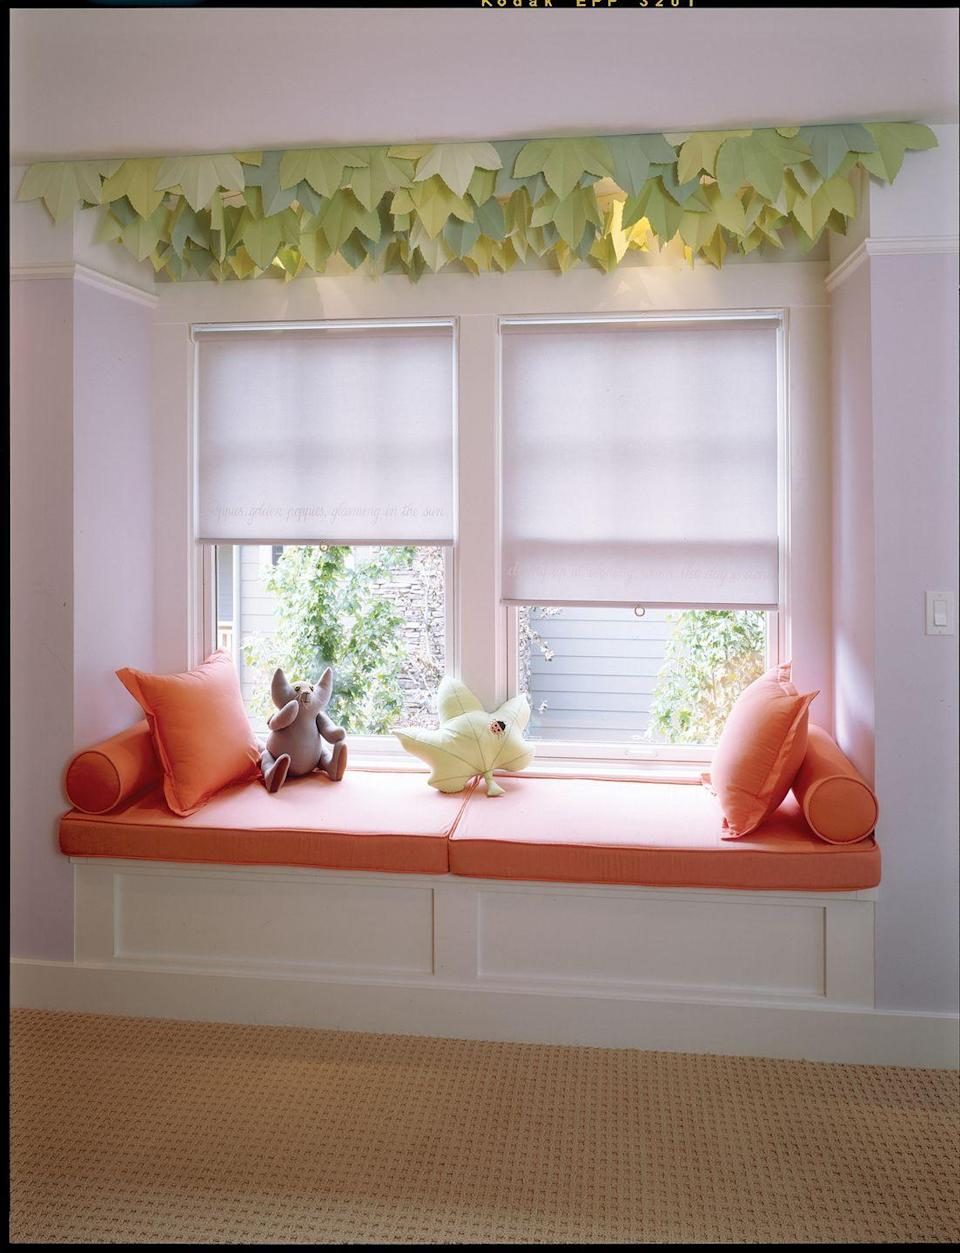 <p>From a ceiling boasting playful leaf decor to an energetic orange bench cushion, any kid would appreciate this reading nook. </p>